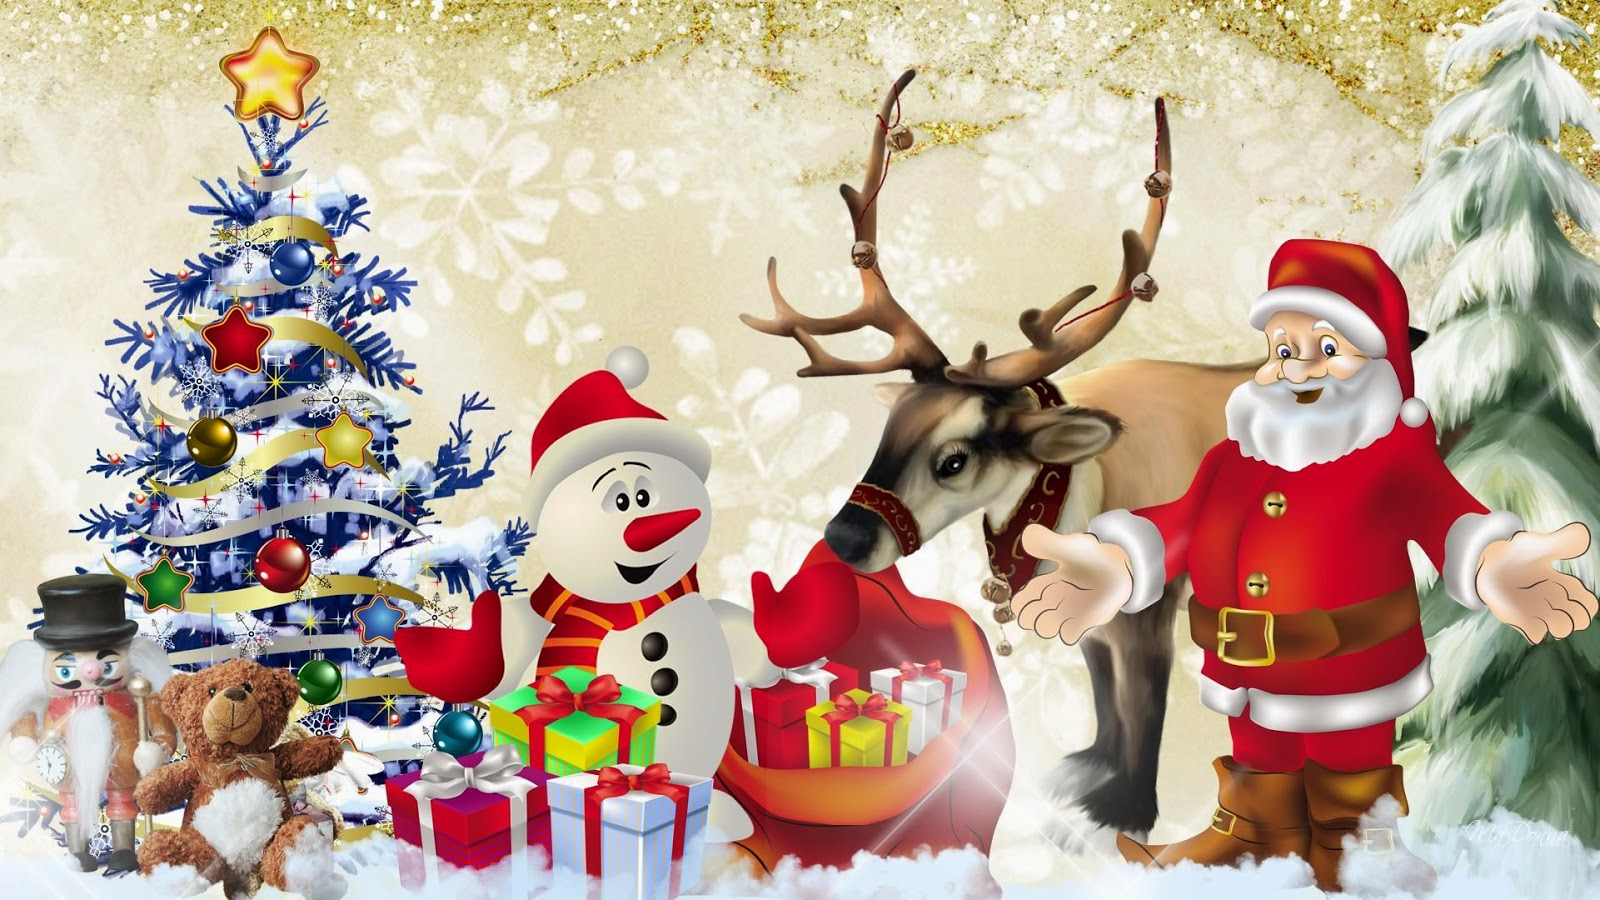 santa-friends-reindeer-snowman-xmas-tree-Christmas-cartoon-wallpaper.jpg